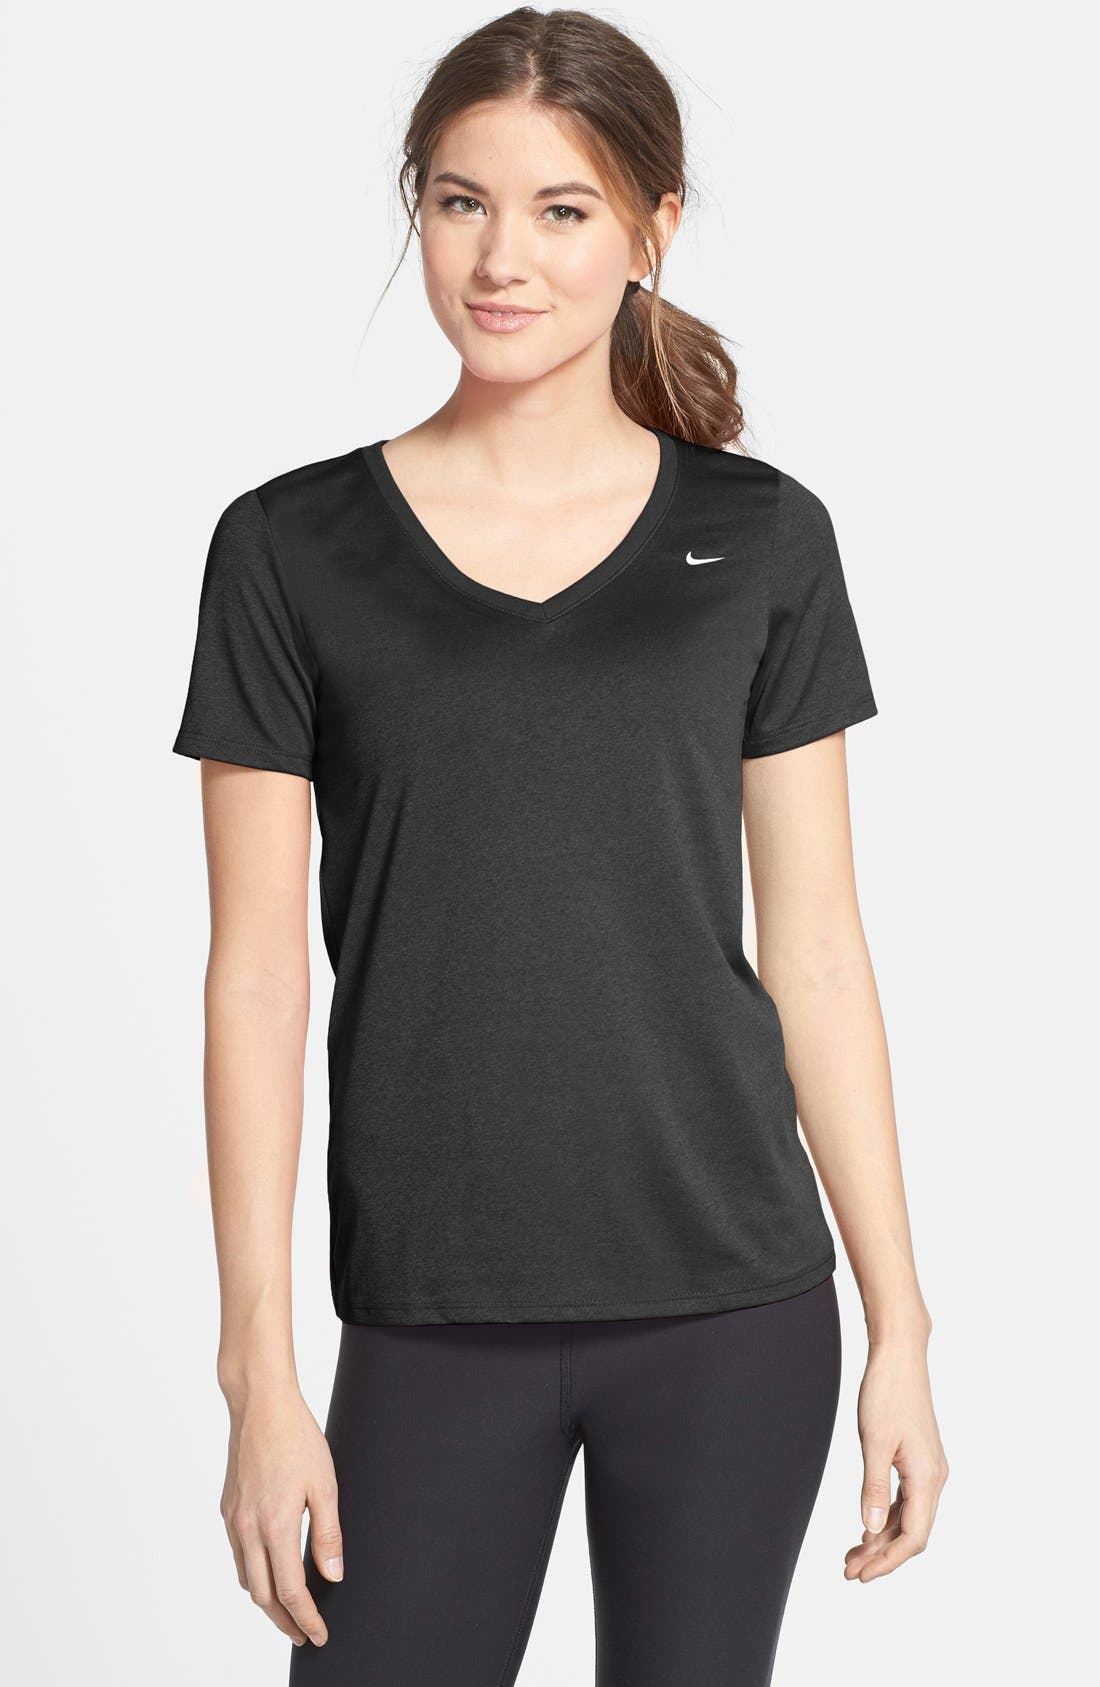 NIKE 'Legend 2.0' Short Sleeve V-Neck Tee, Main, color, 010